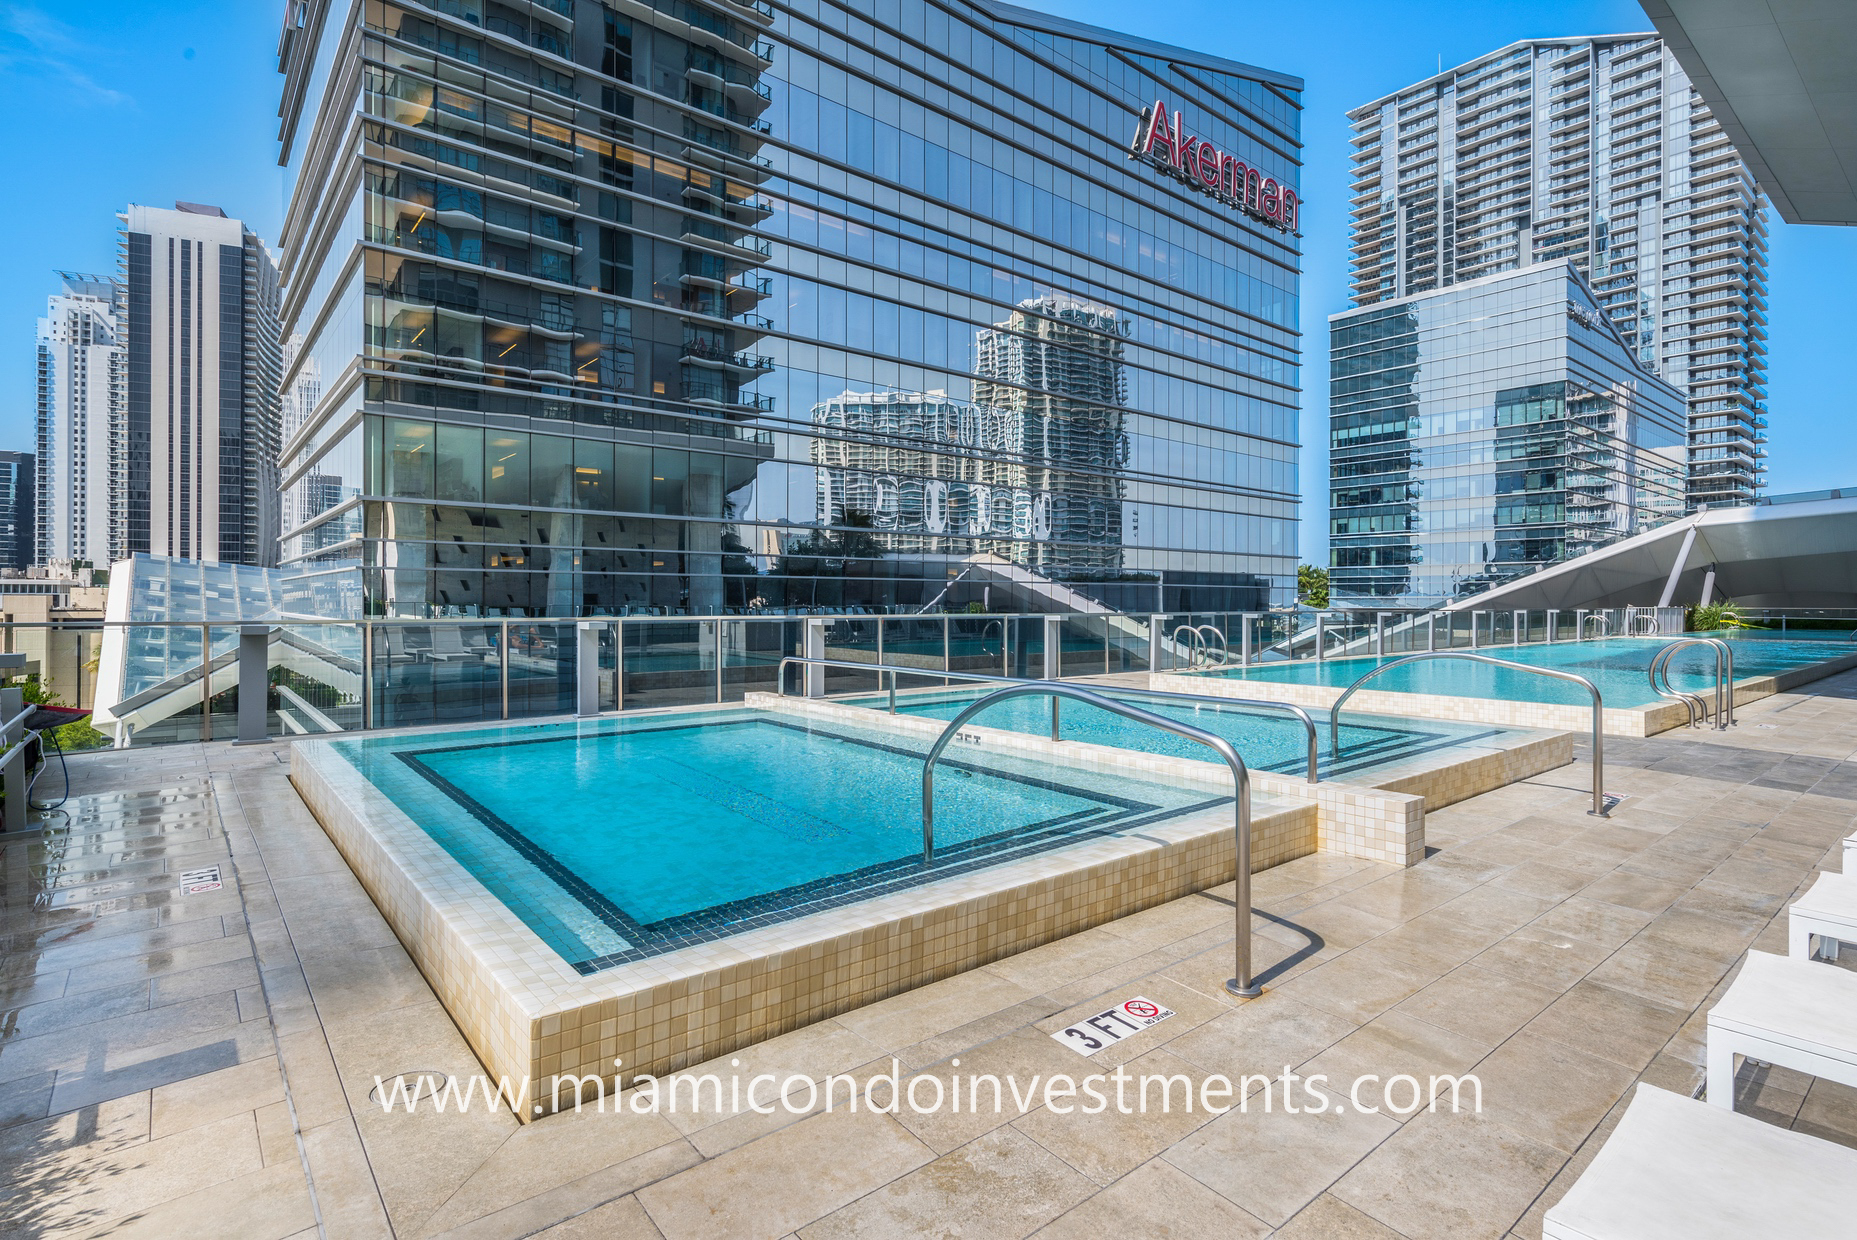 hot tubs at Reach Brickell City Centre